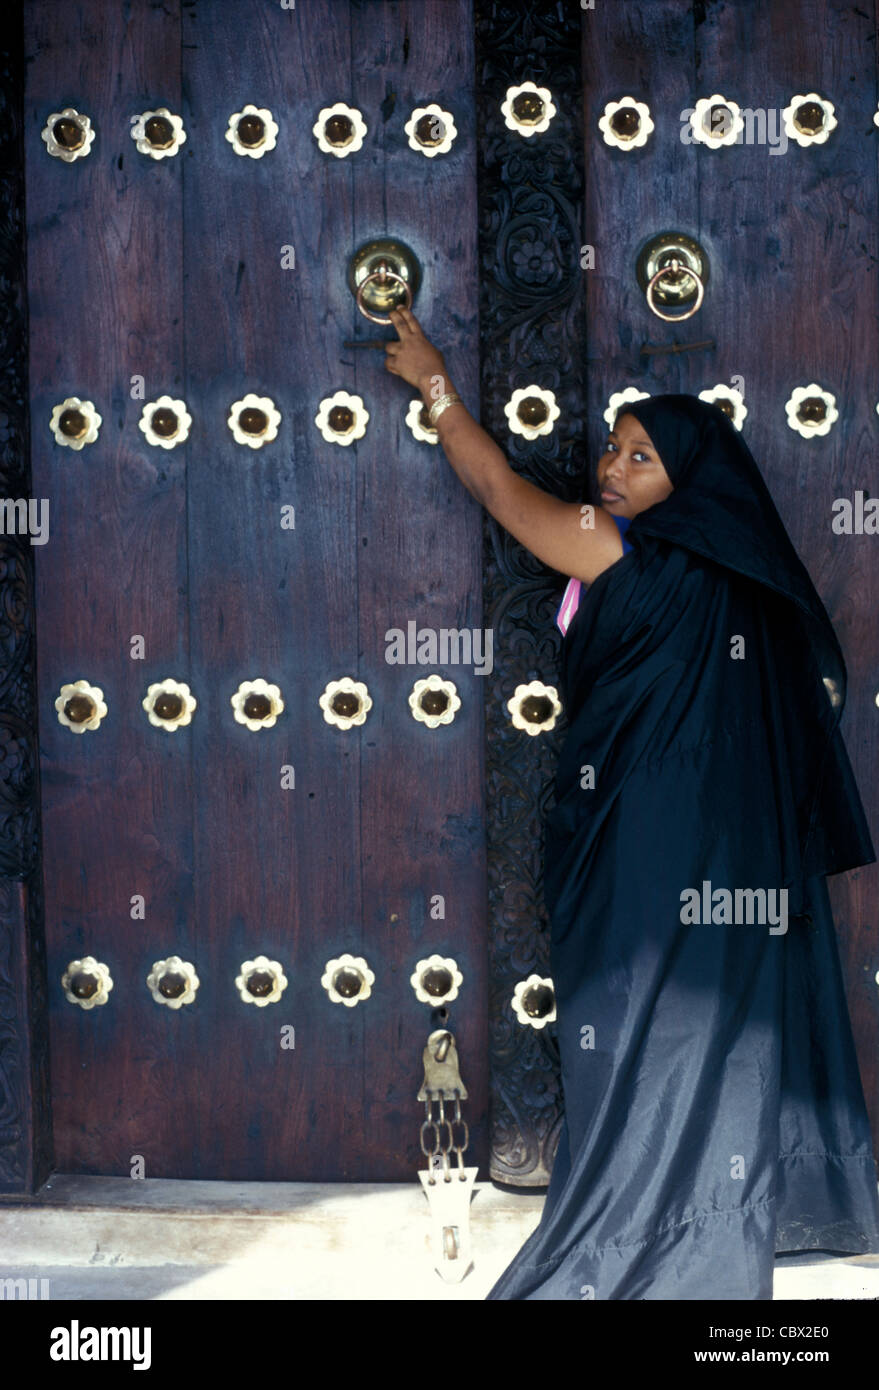 Large carved wooden and brass door in Lamu town with women wearing traditional Arab clothing - Stock Image